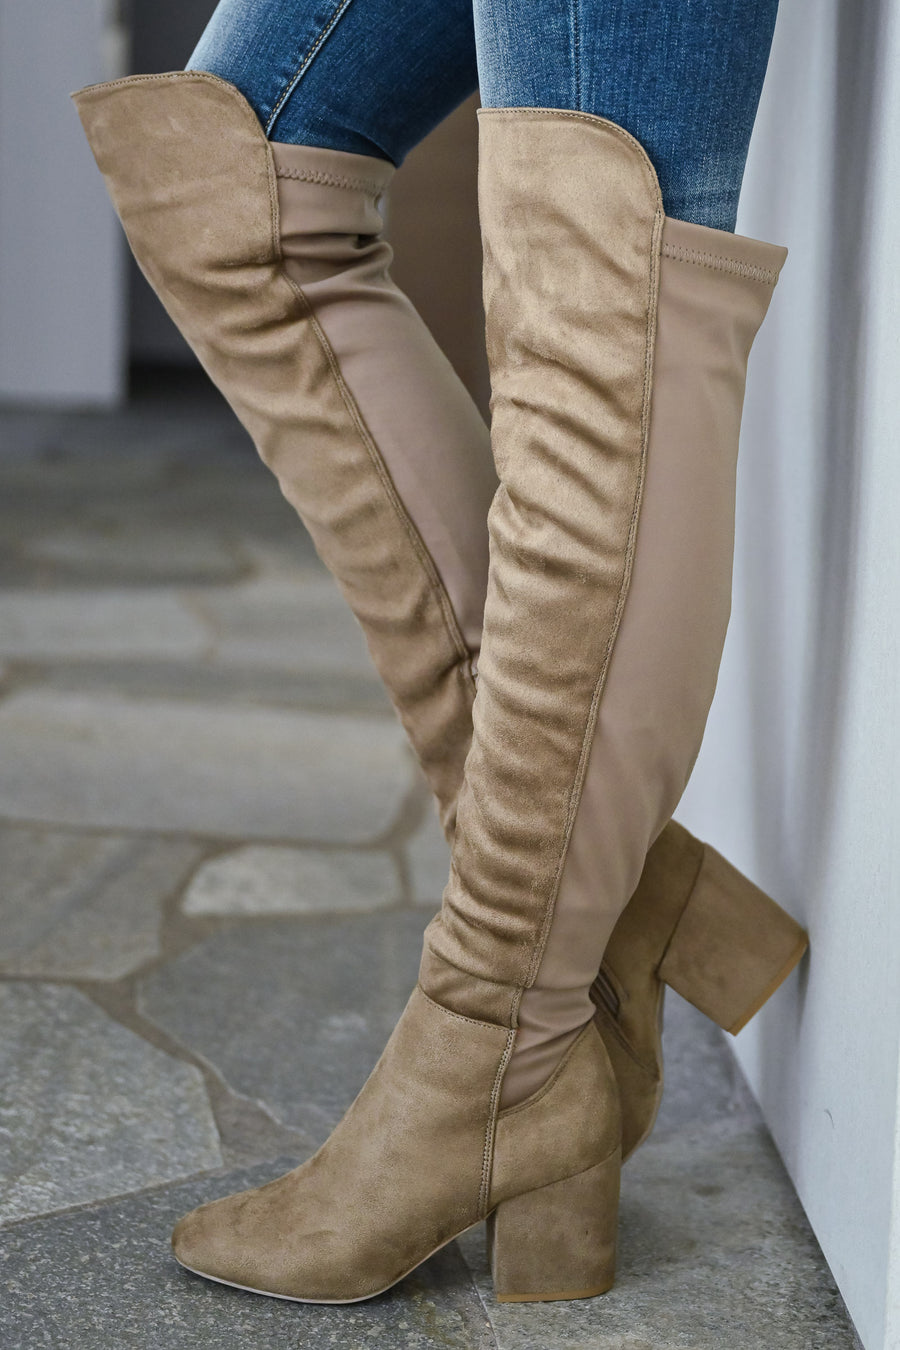 Heidi Over The Knee Boots - Taupe womens trendy suede otk boots with zipper detail for fall closet candy front